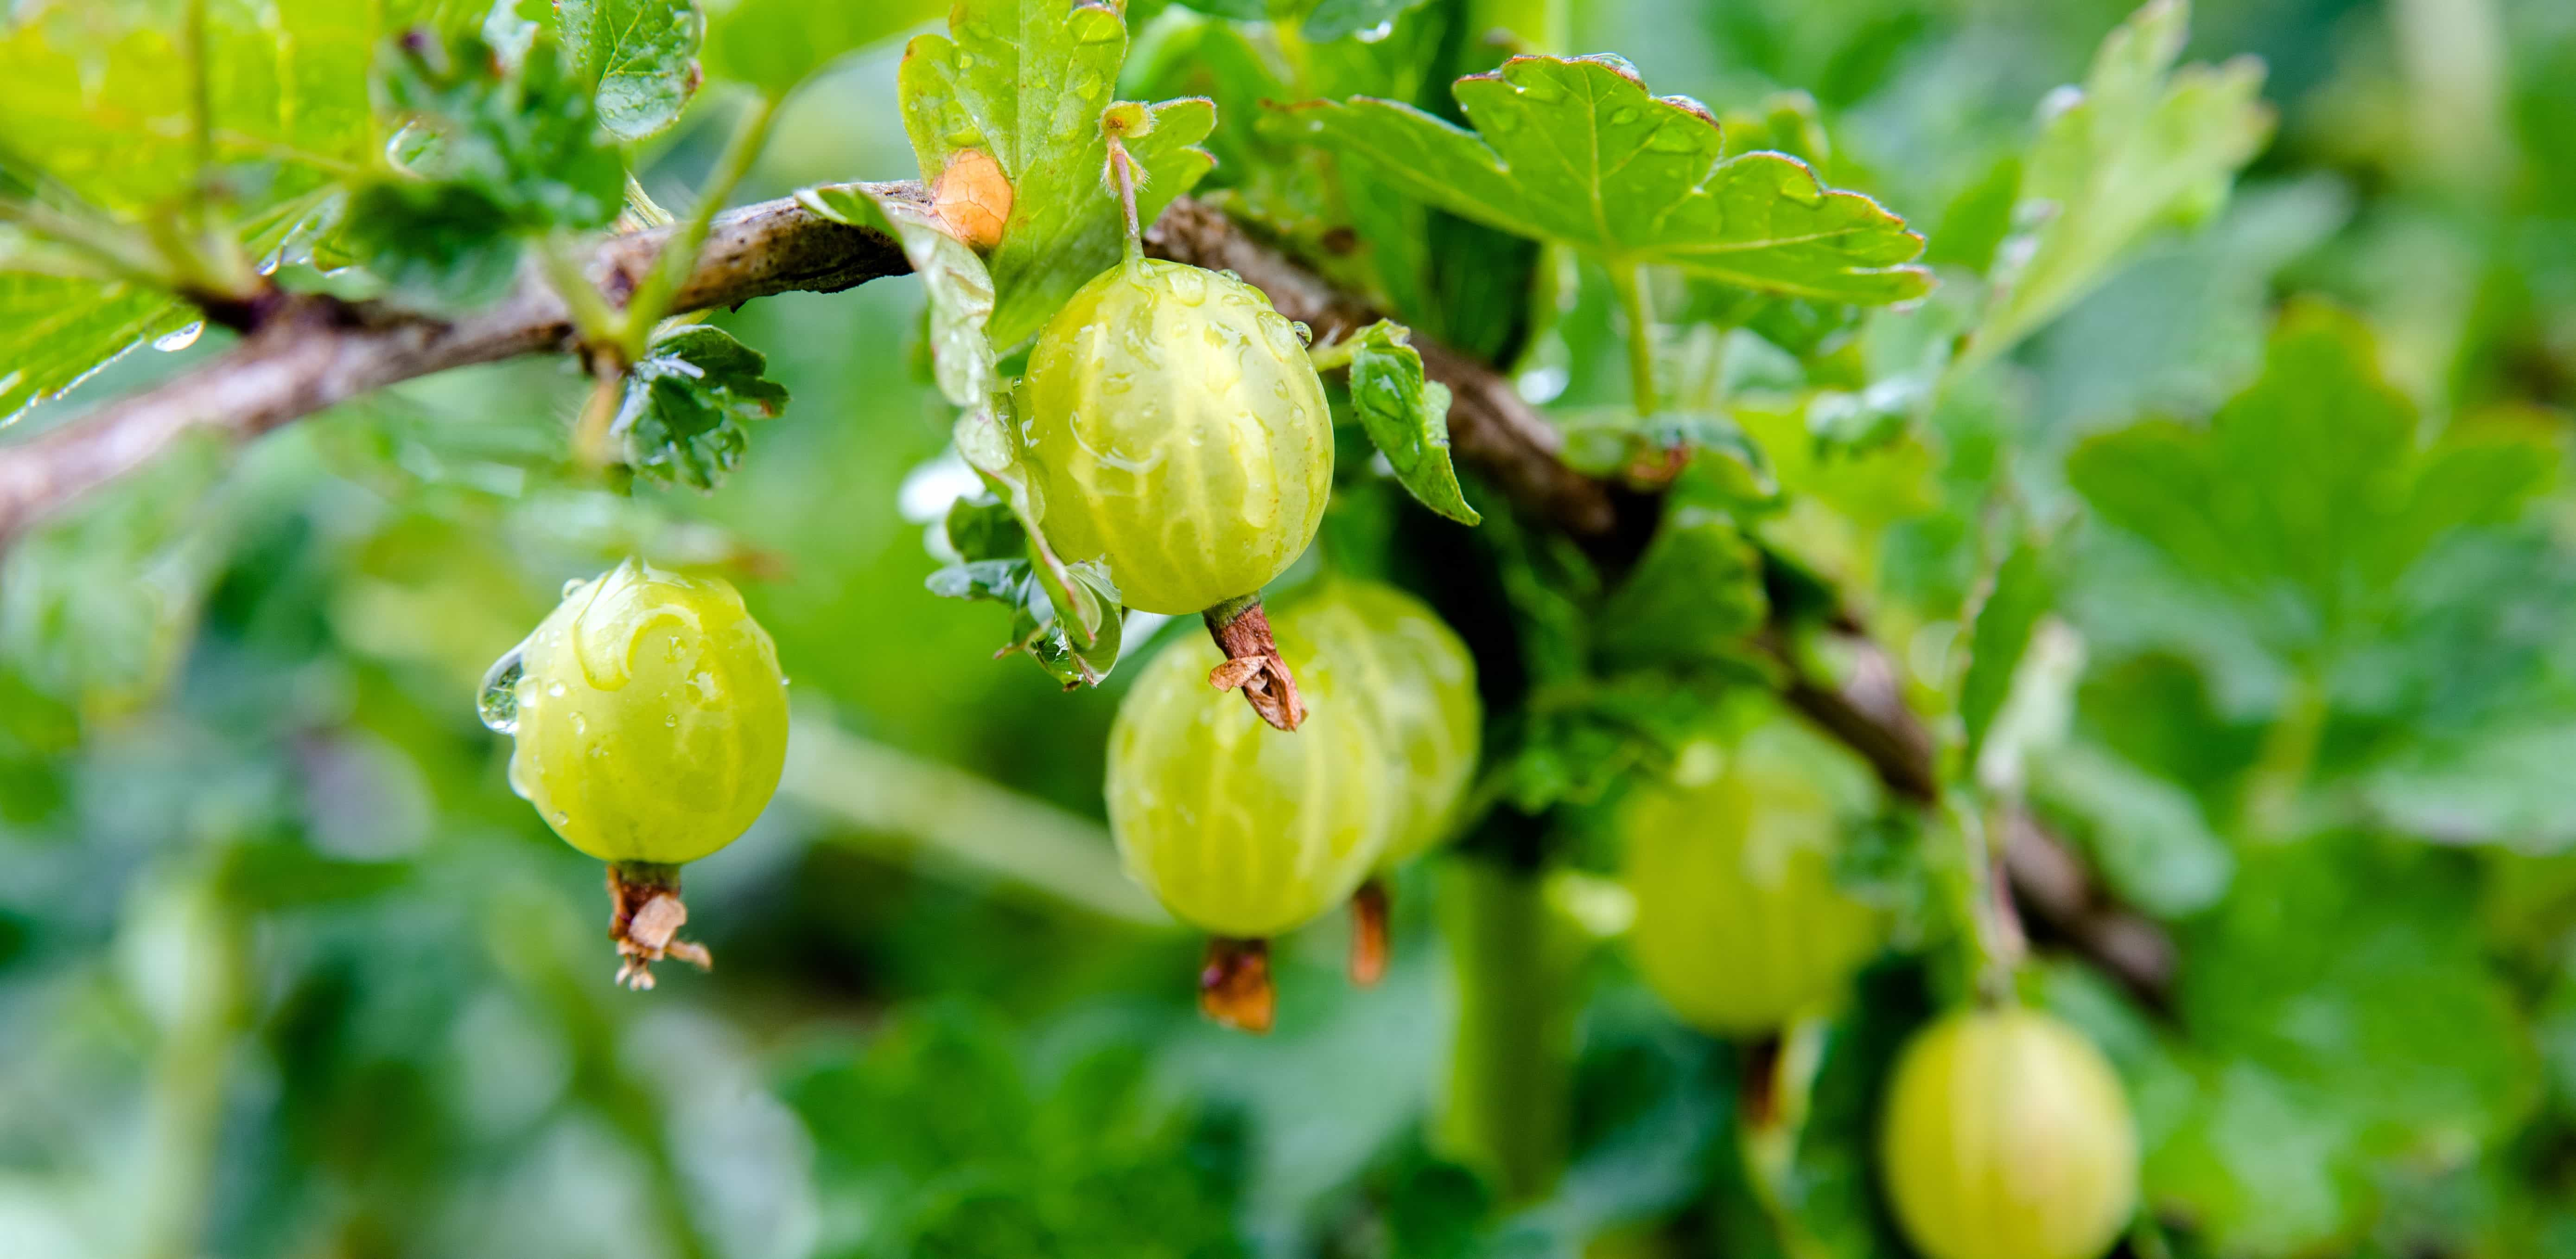 Climatic & Soil requirement for growing Indian gooseberry